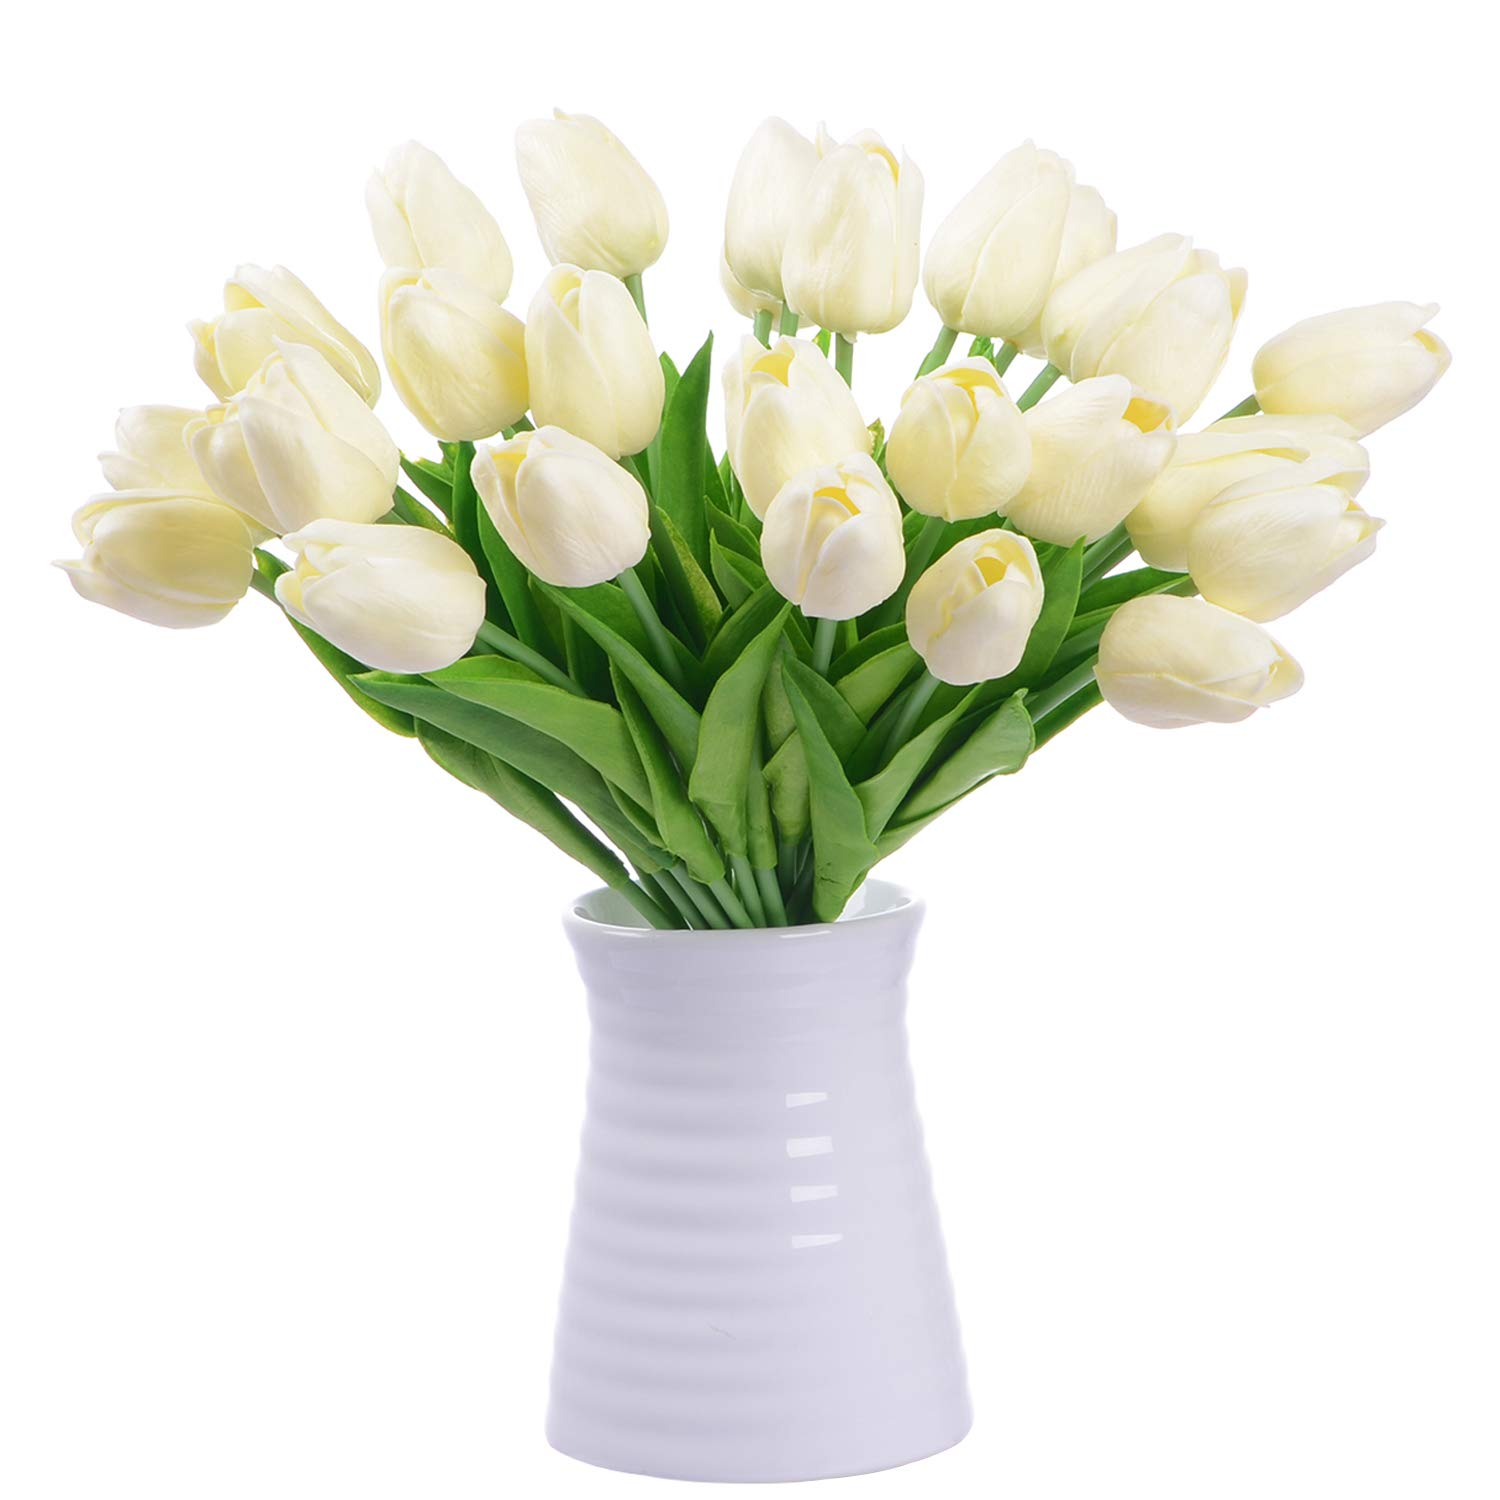 DearHouse Artificial Tulips Silk Flowers - 20 Pcs Fake ...